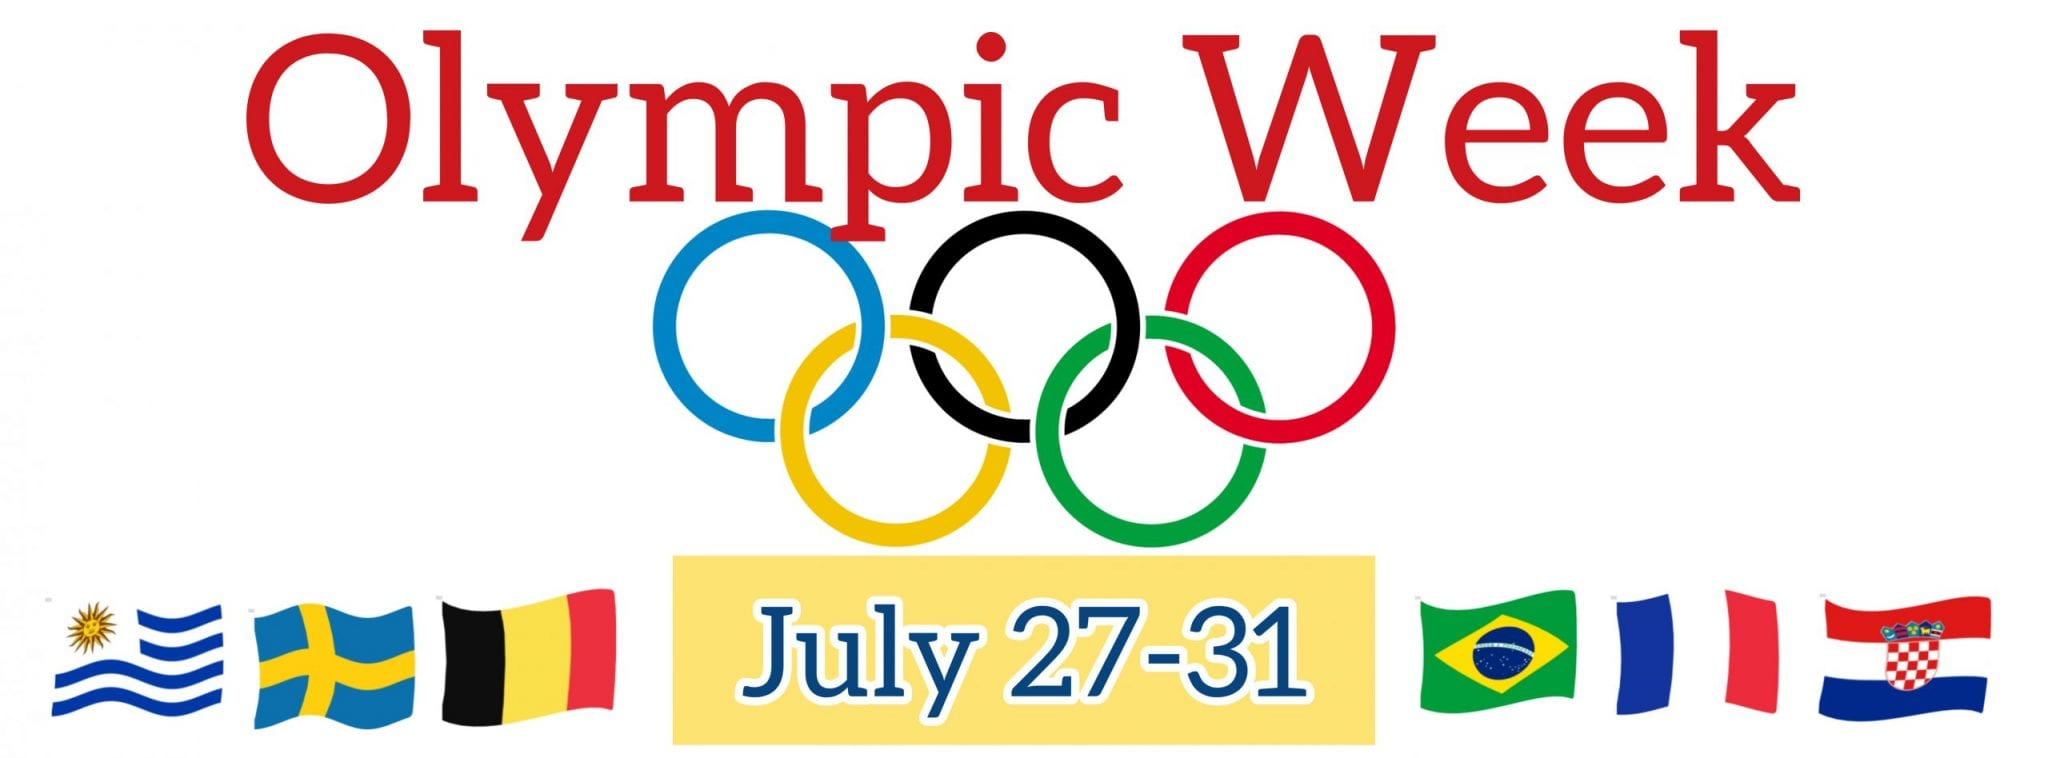 Olympic Week (July 27th-31st)